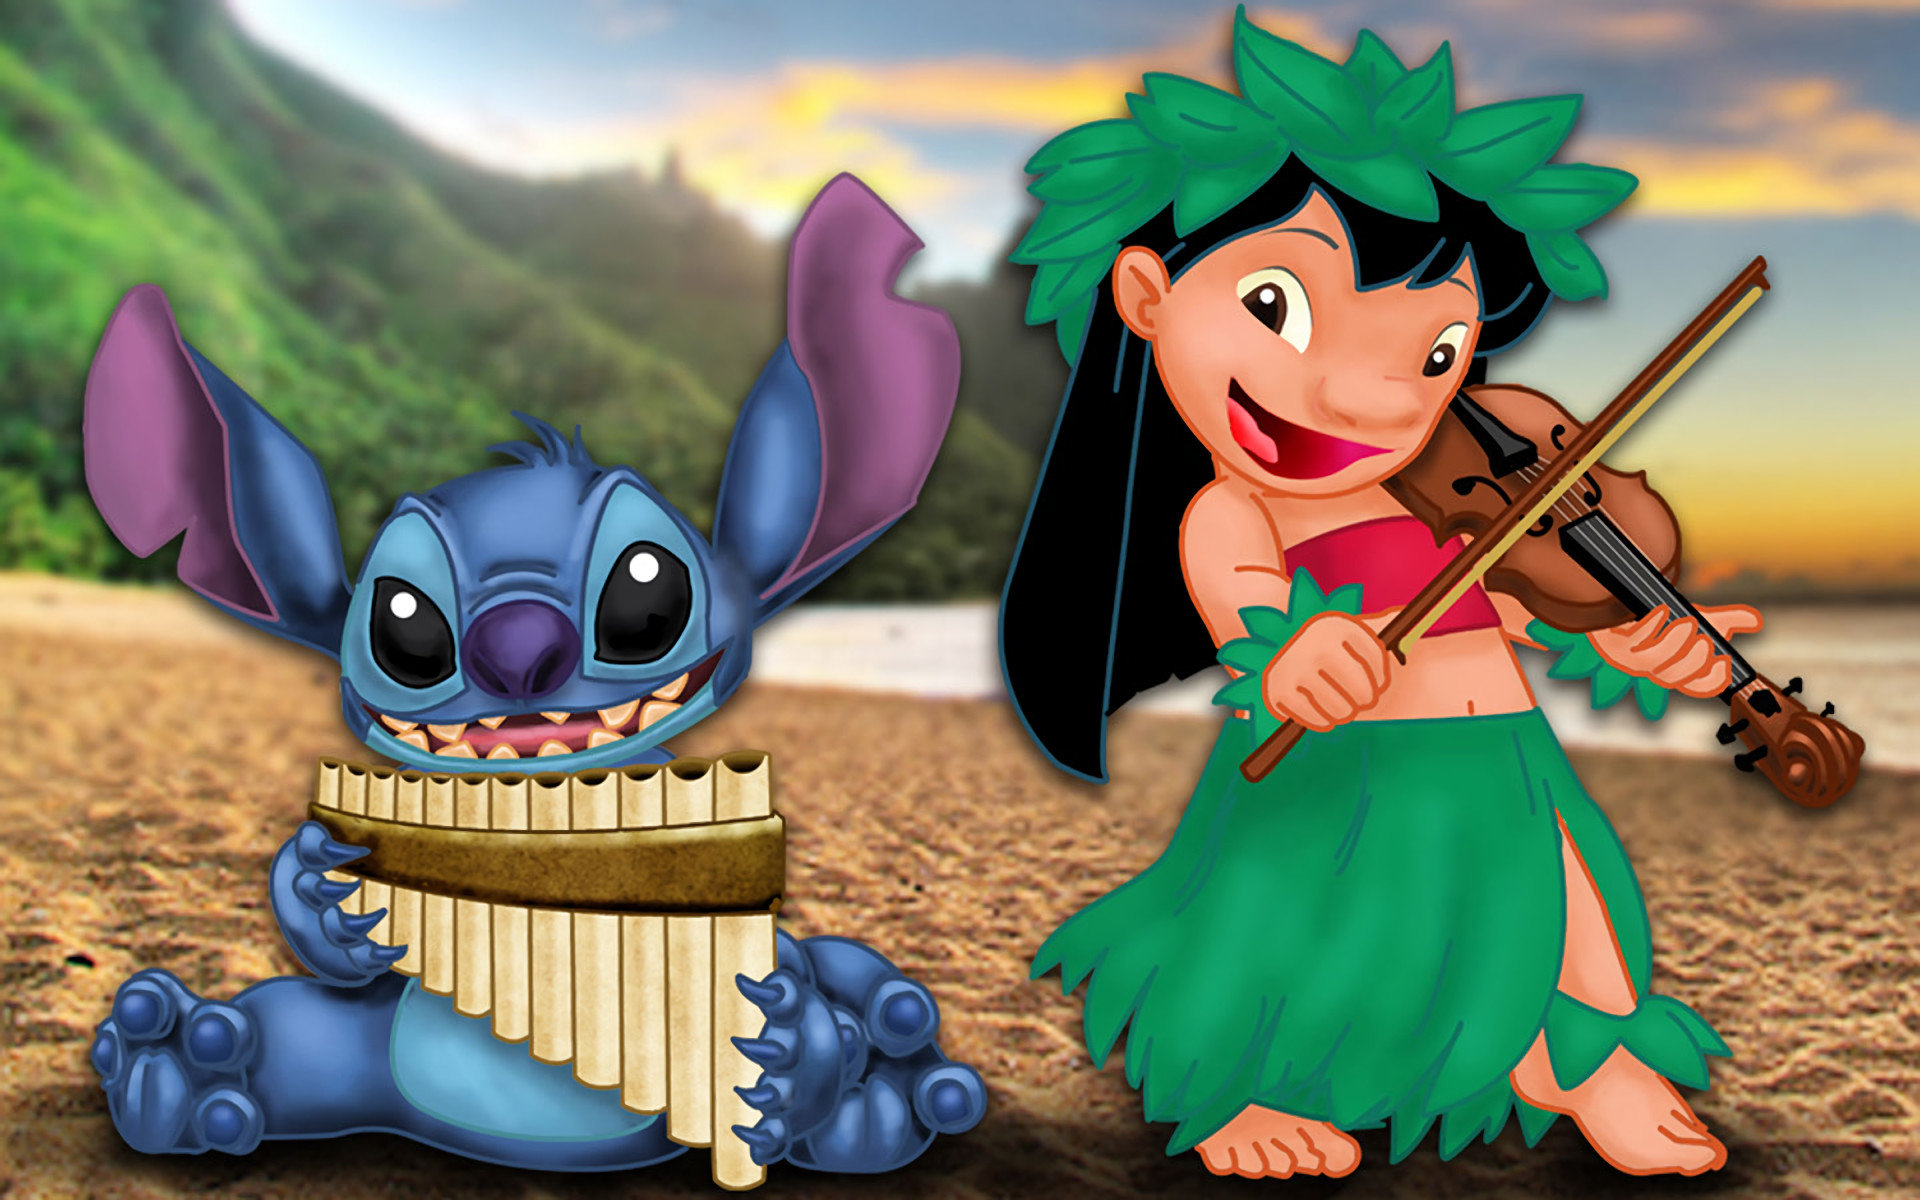 Best Lilo And Stitch Wallpaper ID448905 For High Resolution Hd 1920x1200 PC